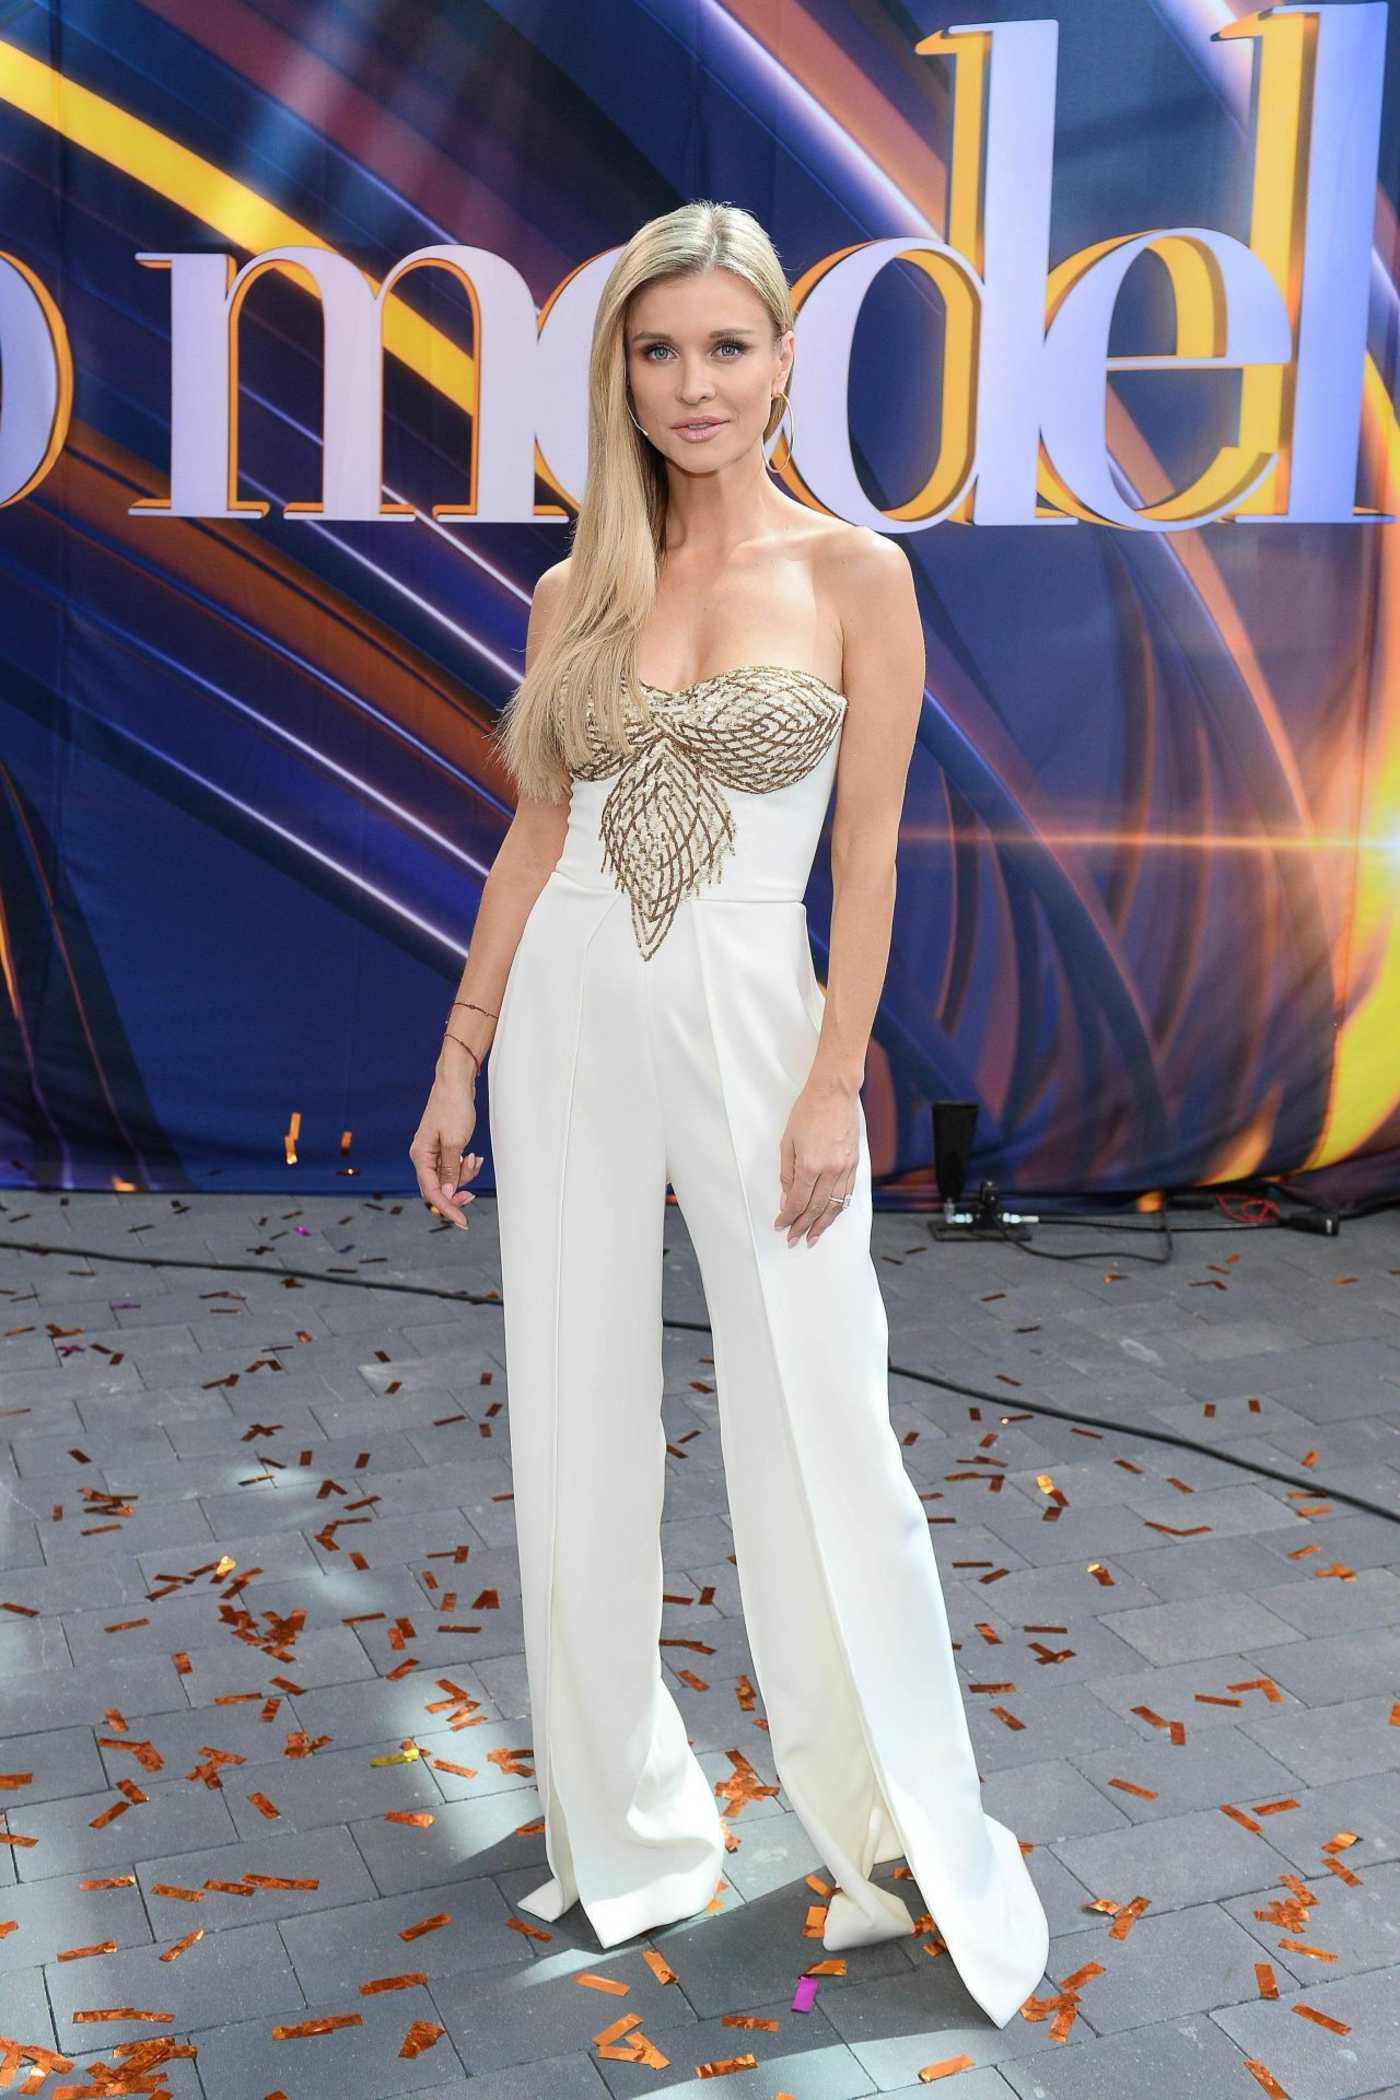 Joanna Krupa Hosted the Casting of the Top Model Show in Warsaw 06/08/2018